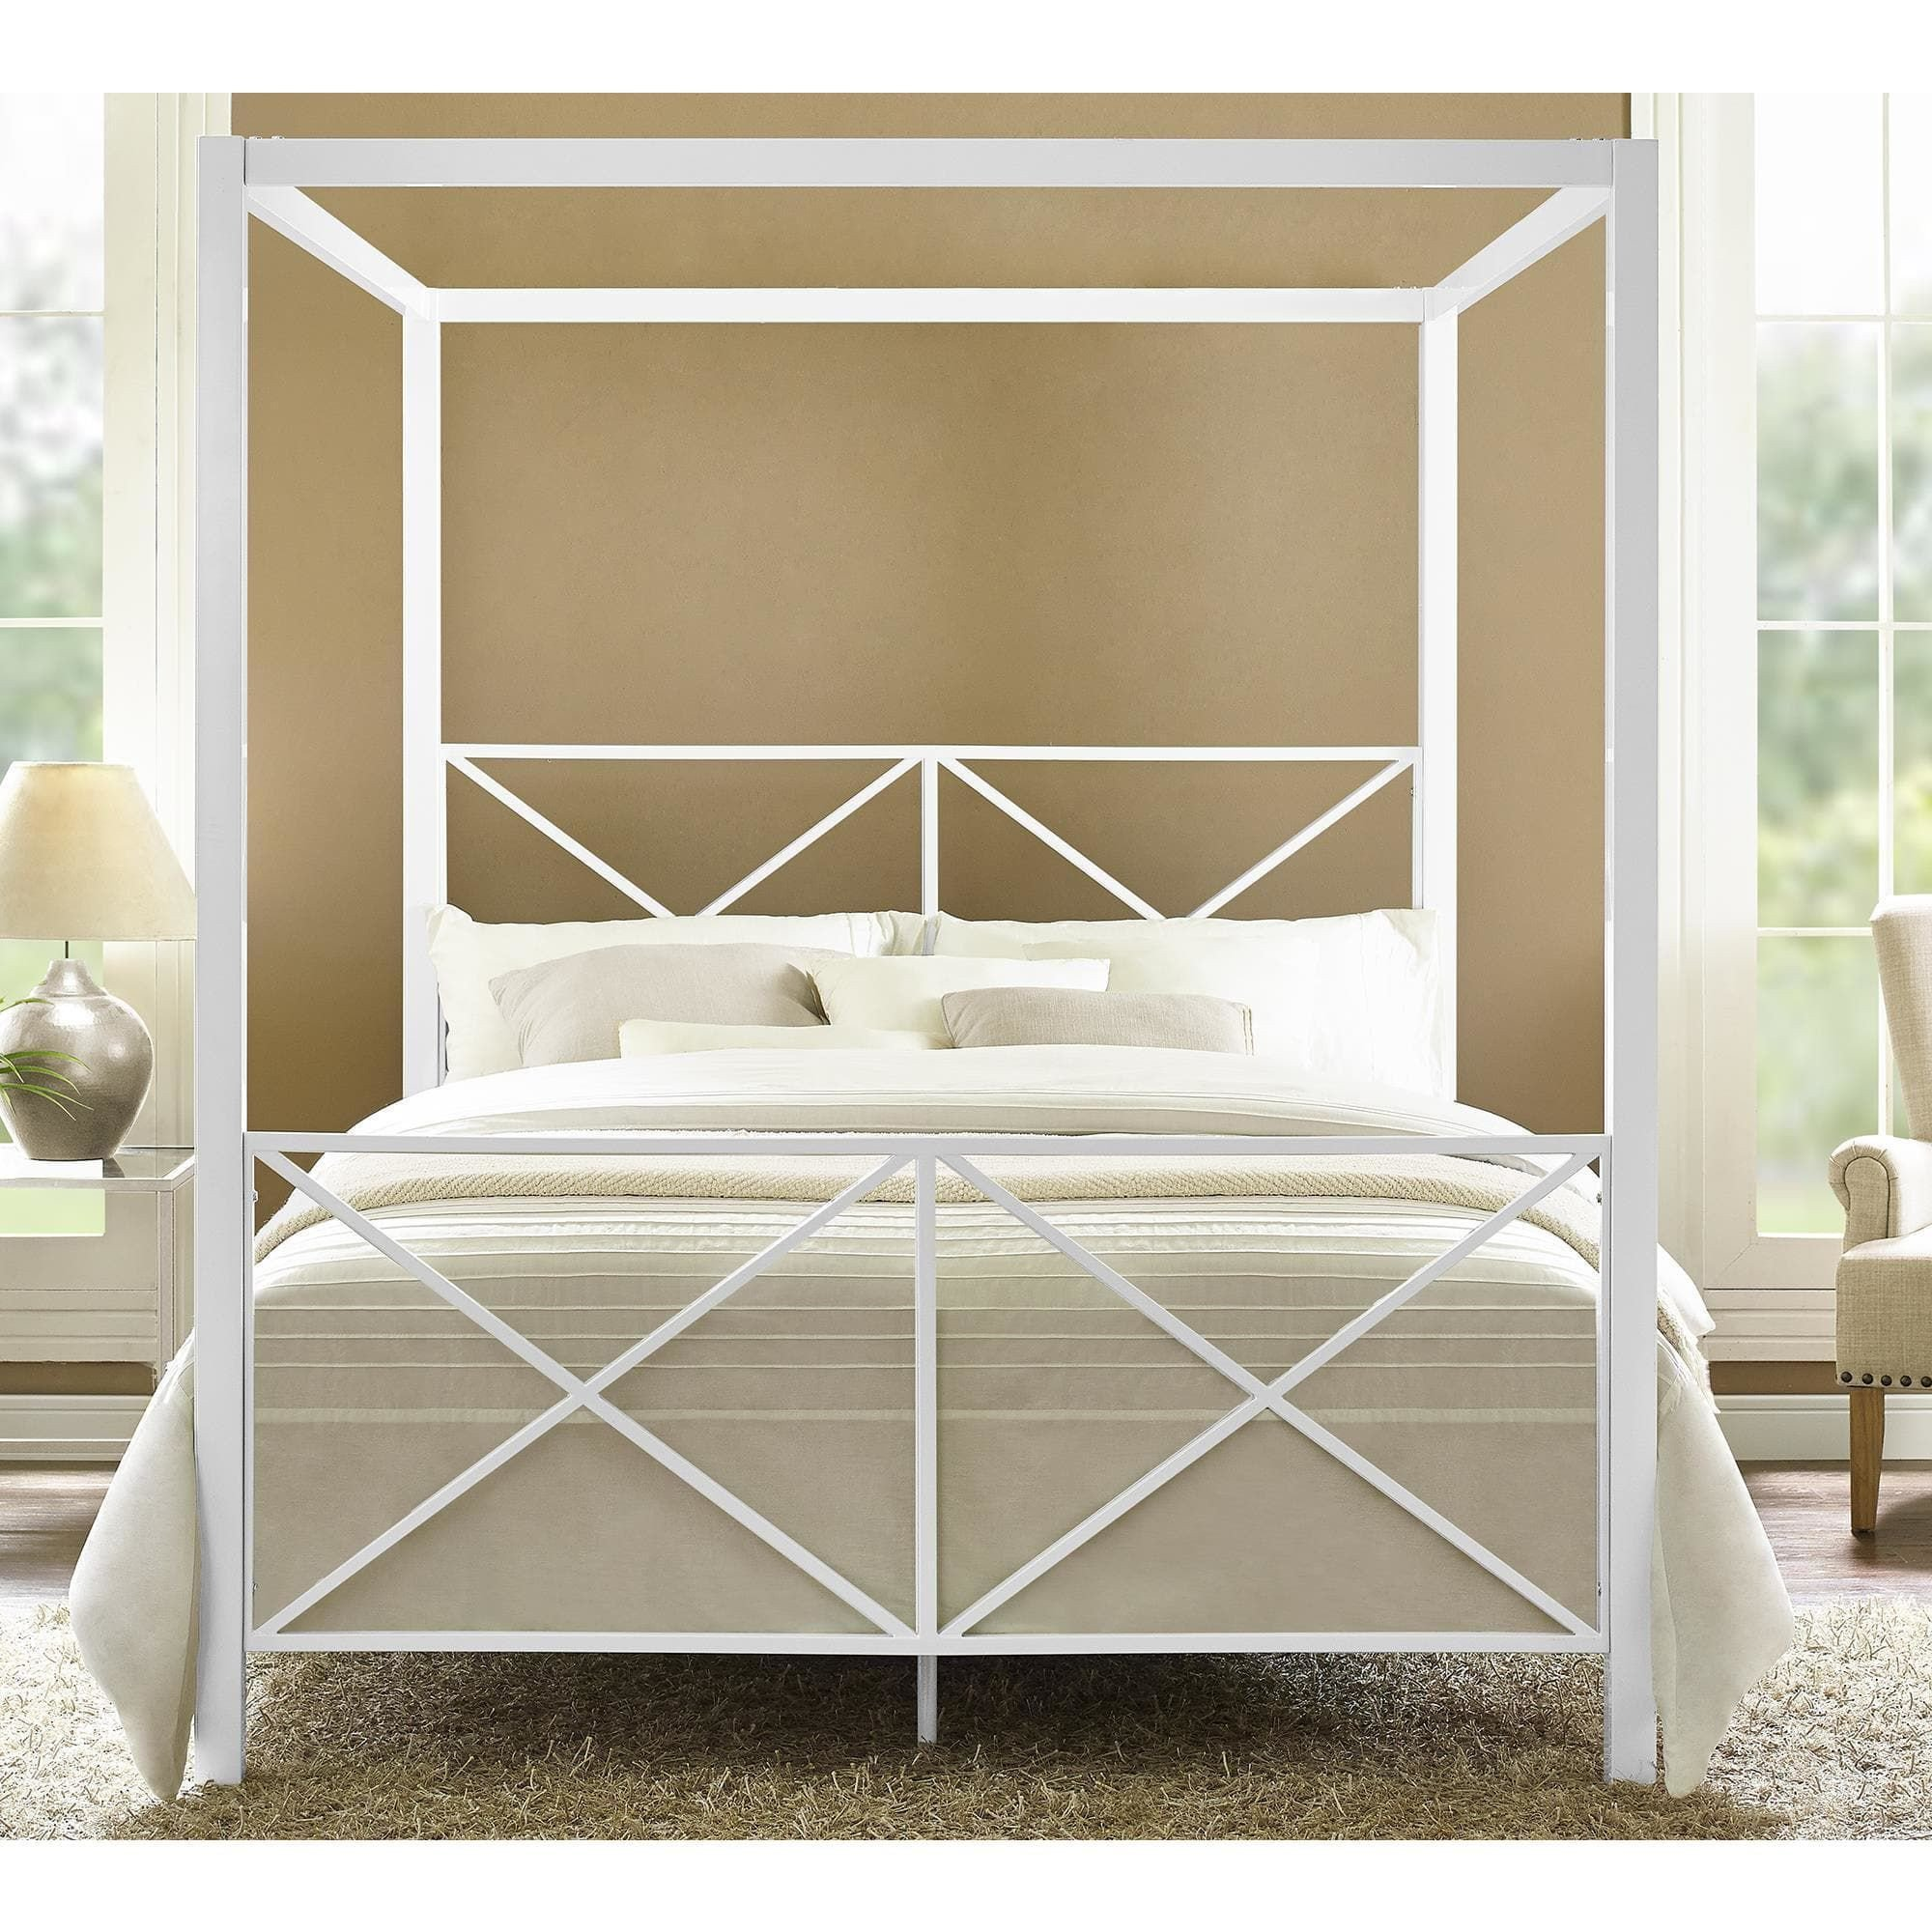 Queen Size Canopy Bedroom Set Unique Line Shopping Bedding Furniture Electronics Jewelry